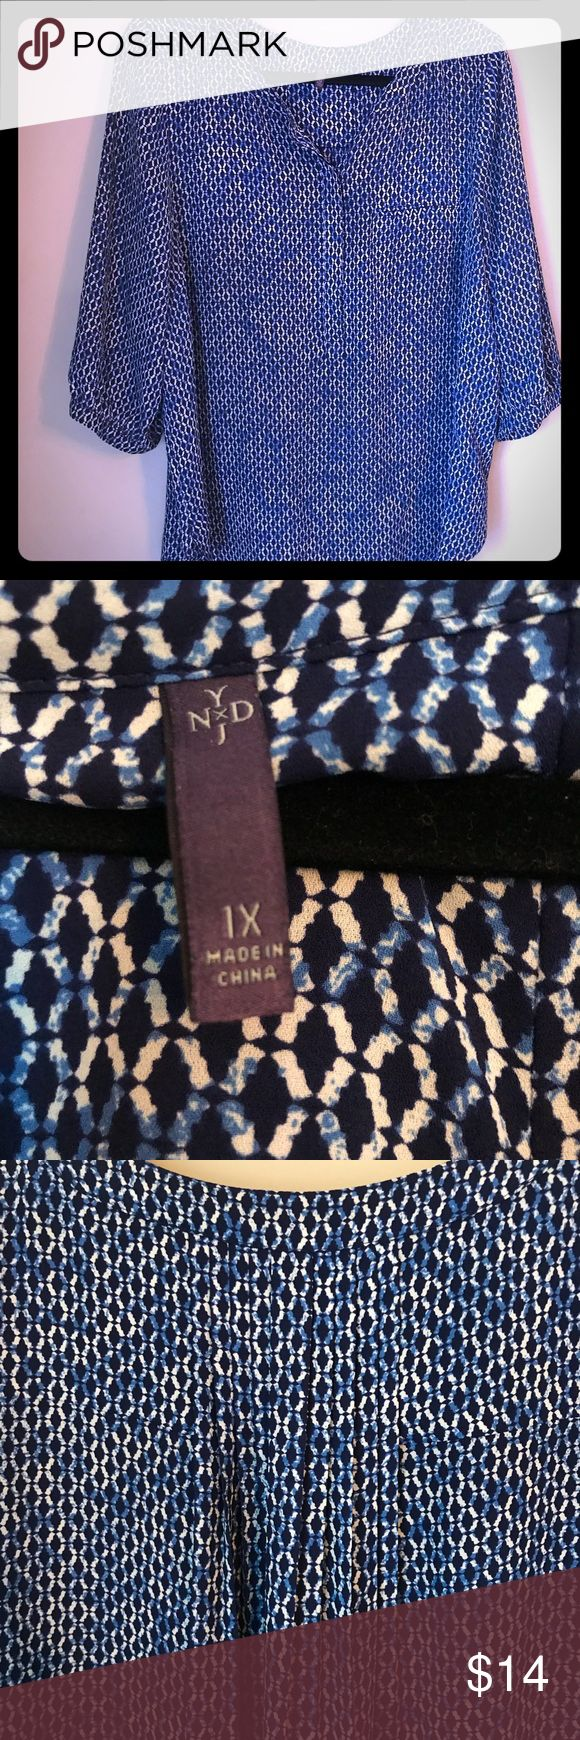 NYDJ plus size blue and white blouse Blue and white pattern NYDJ blouse Perfect for work  Pleat detail on back  3/4 sleeves Excellent used condition NYDJ Tops Blouses